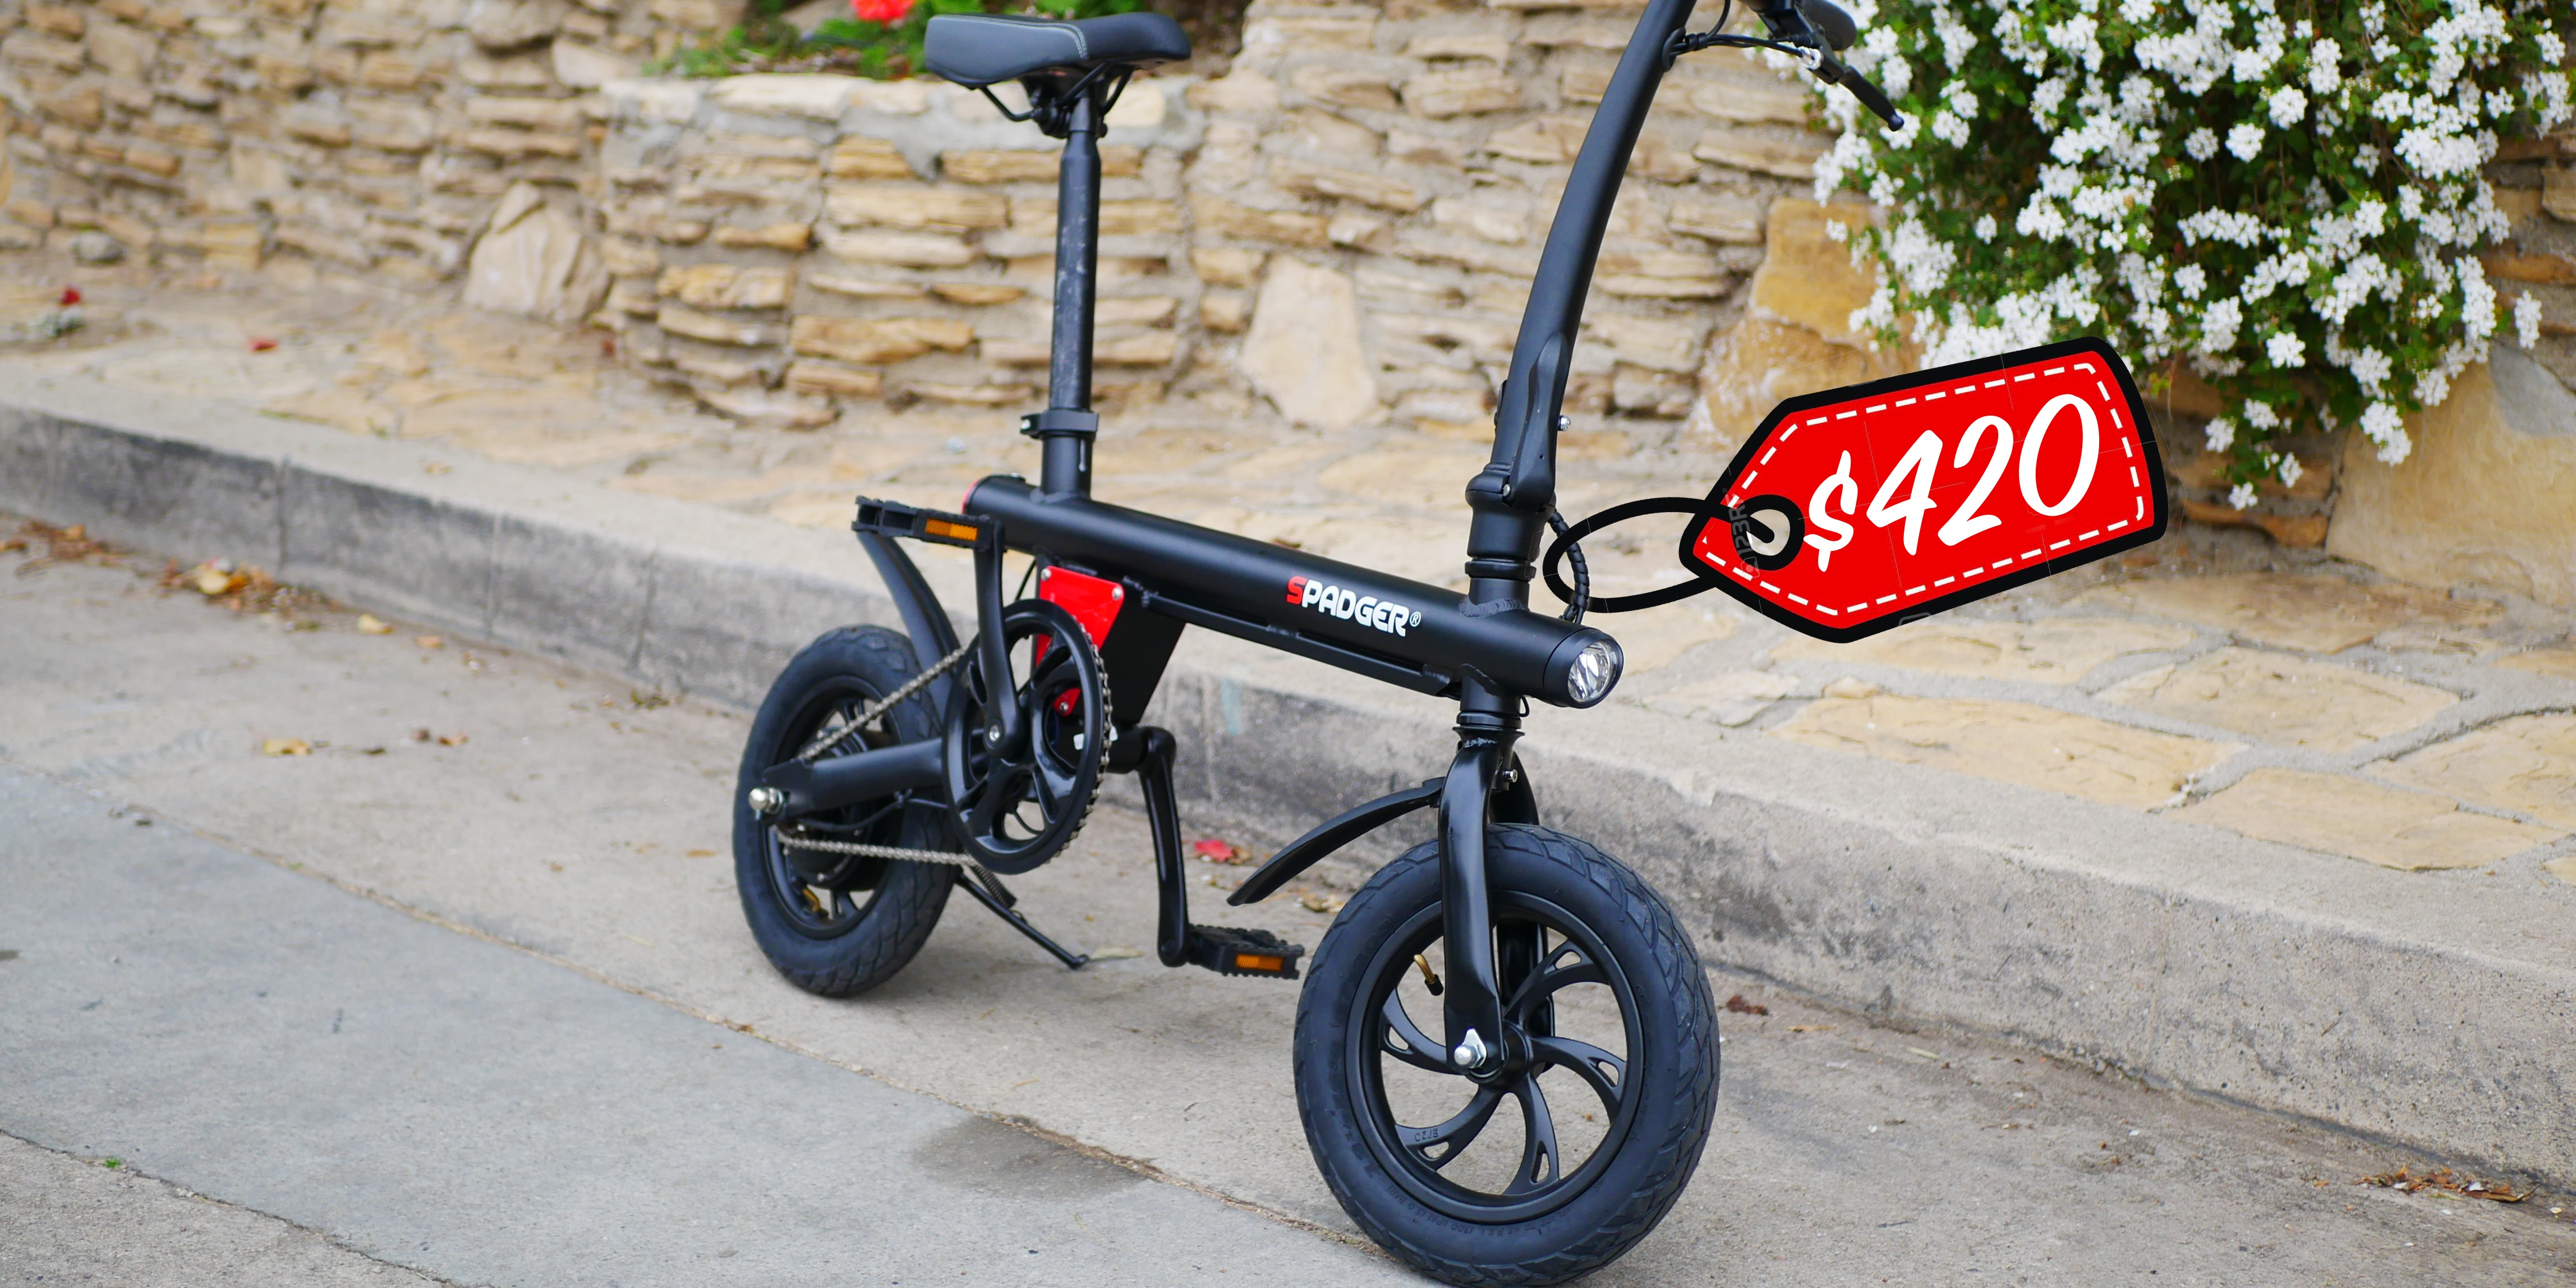 Spadger 420 Electric Bike Review From Amazon Is It Cool Or Crap